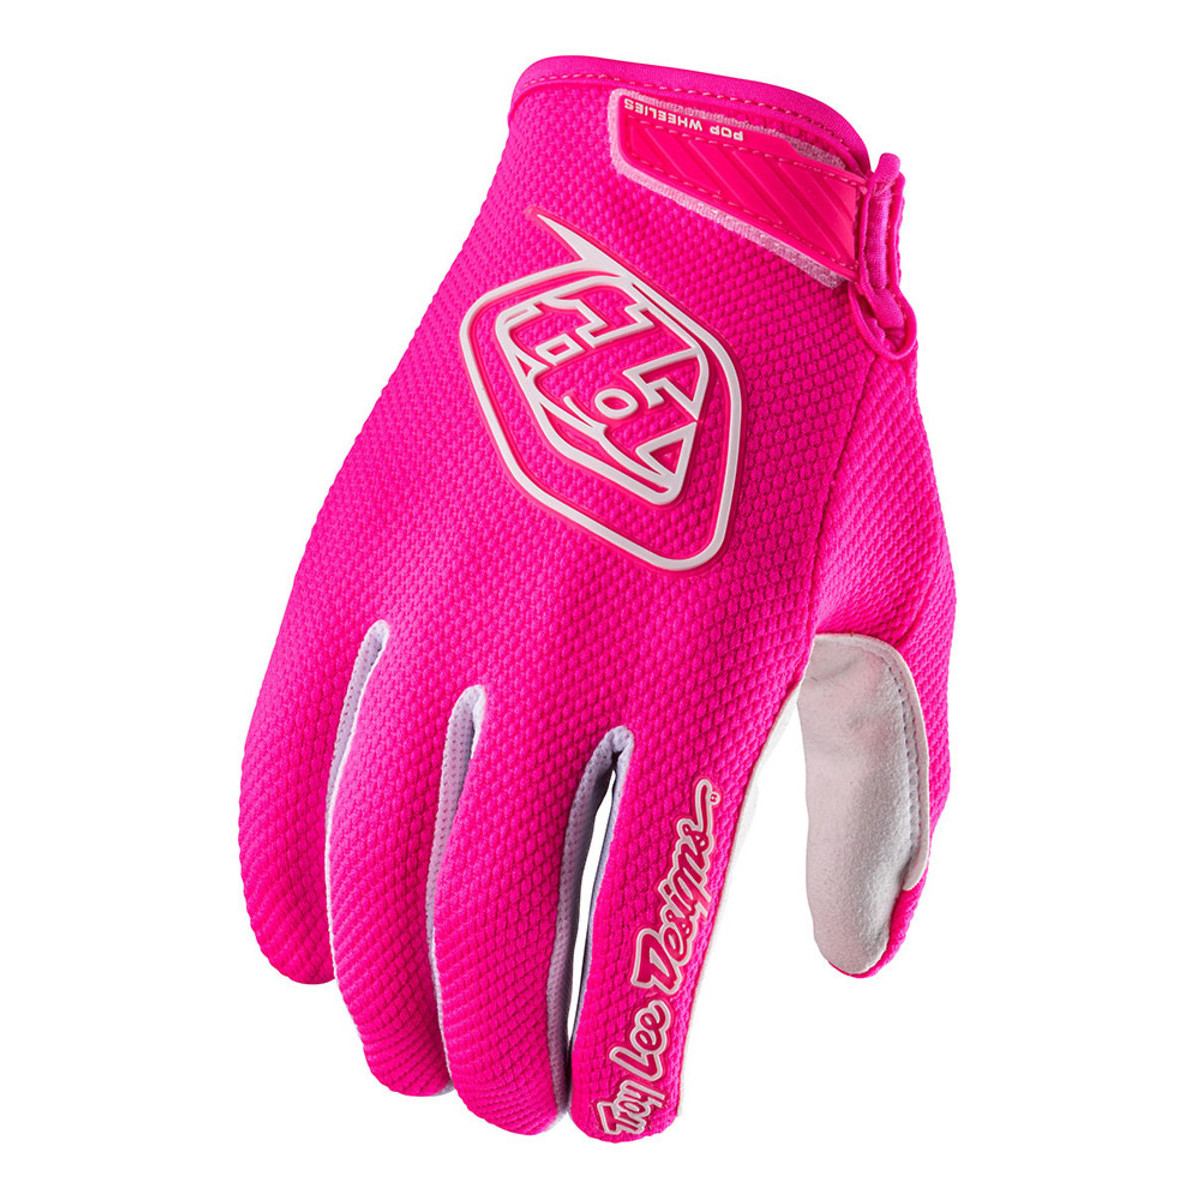 texture nette style à la mode design élégant Troy Lee Designs Air Gloves - Reviews, Comparisons, Specs ...